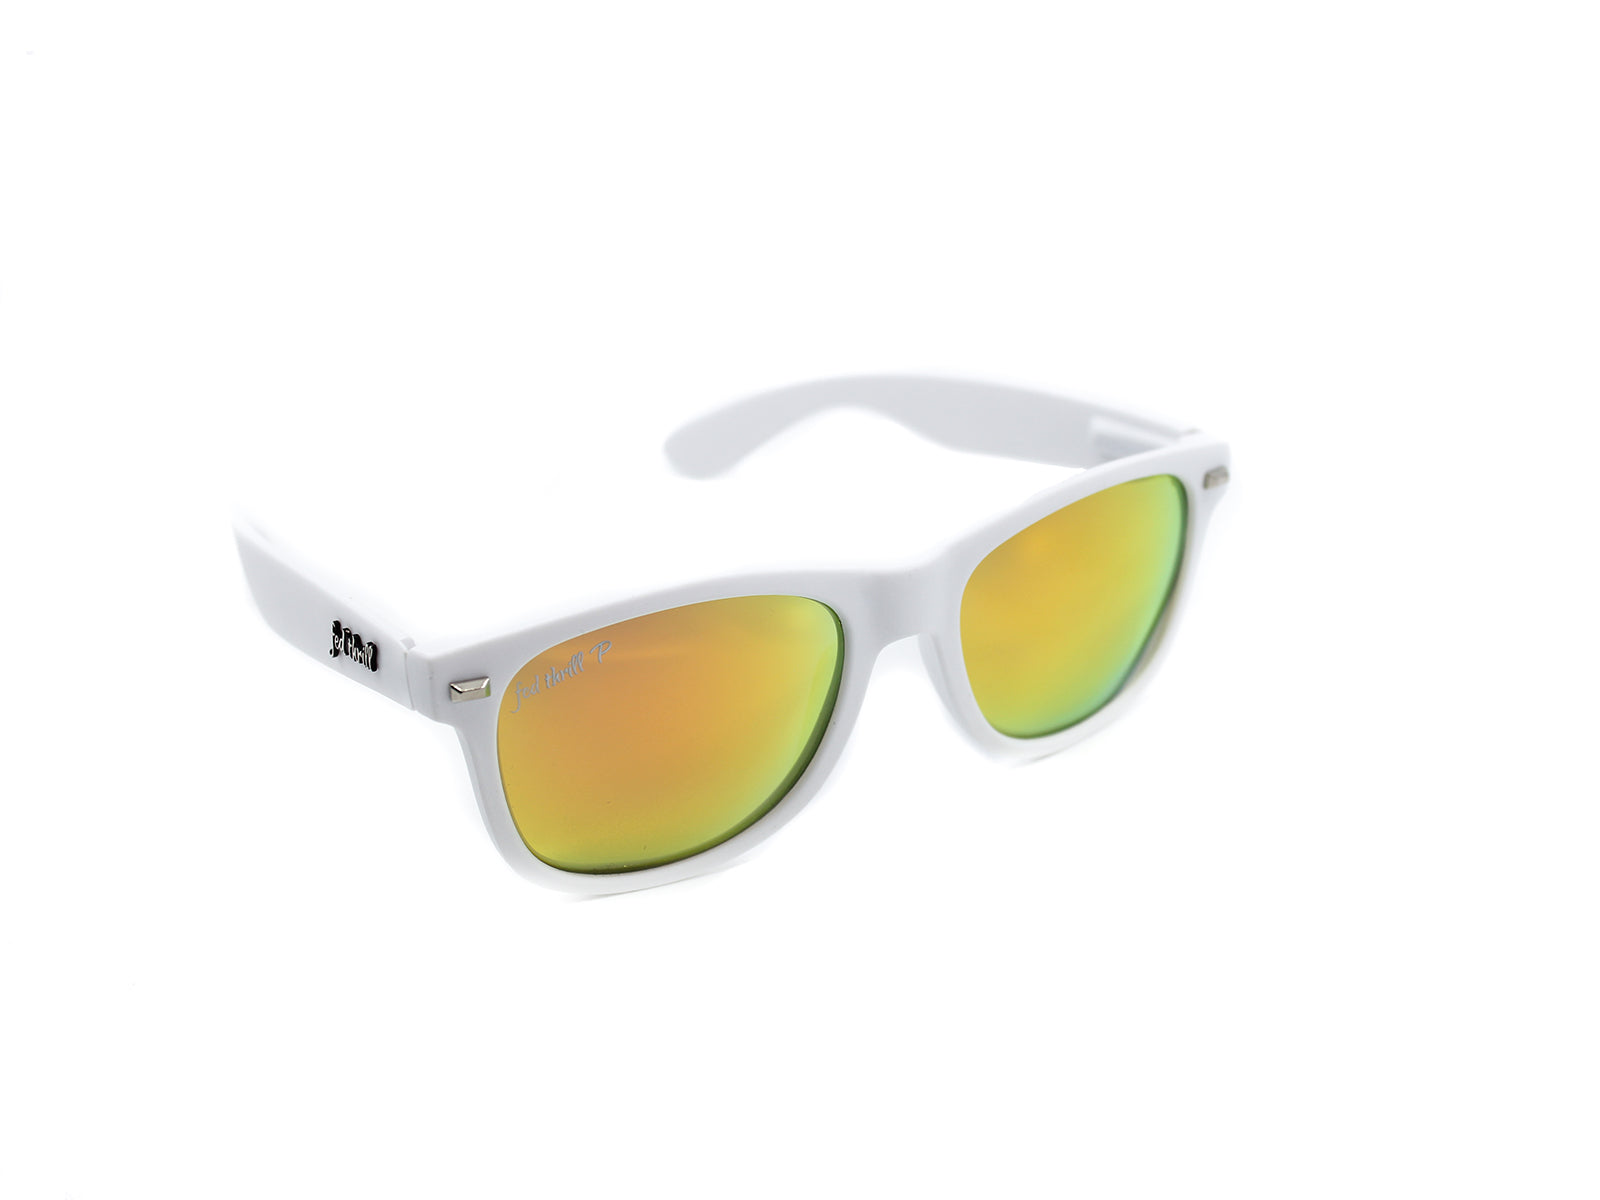 Fultons - Ice & Fires: White / Mirrored Orange Polarized